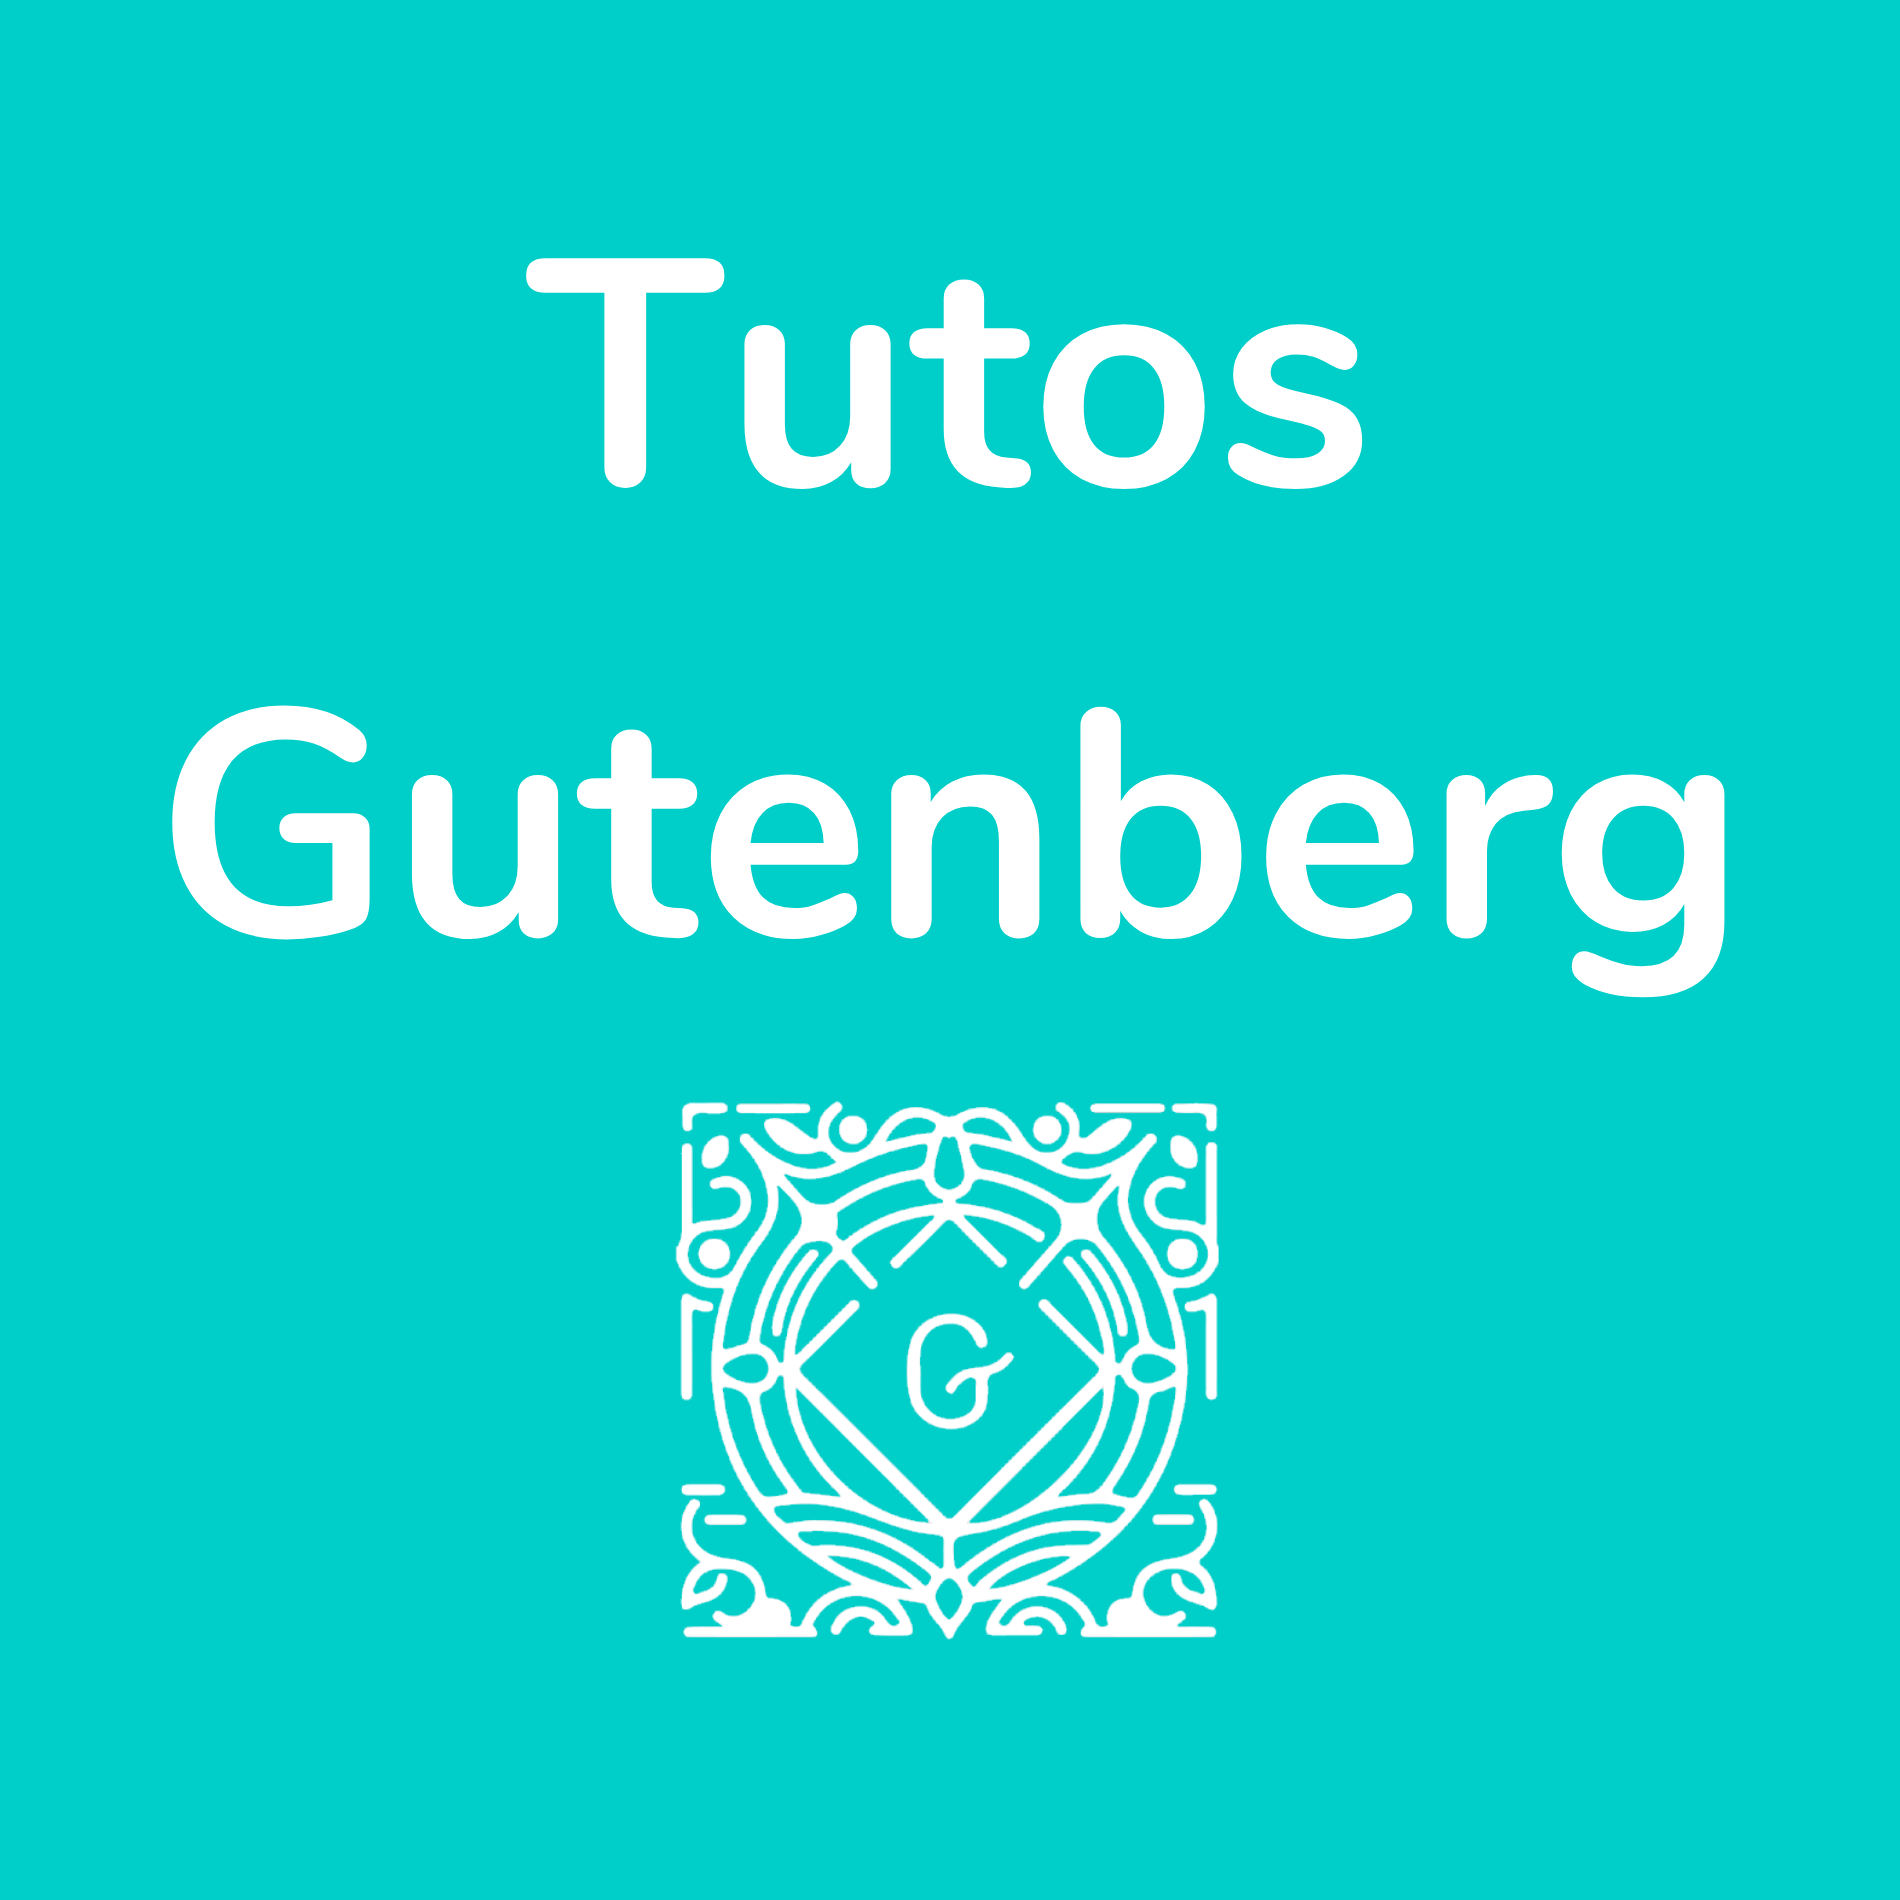 tutos-gutenberg-wordpress-wp